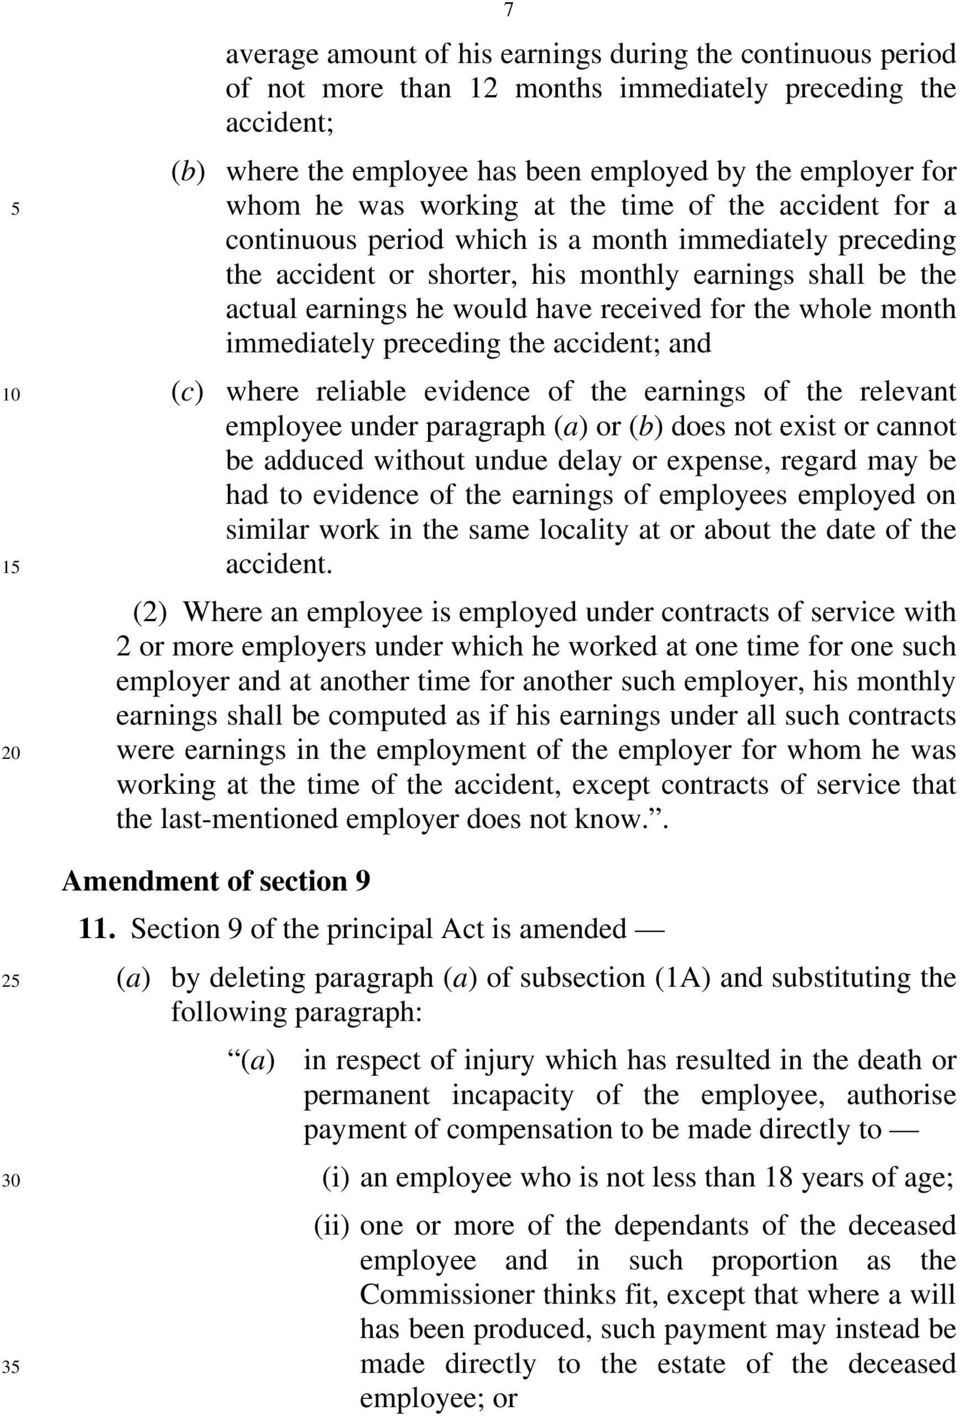 received for the whole month immediately preceding the accident; and (c) where reliable evidence of the earnings of the relevant employee under paragraph (a) or (b) does not exist or cannot be